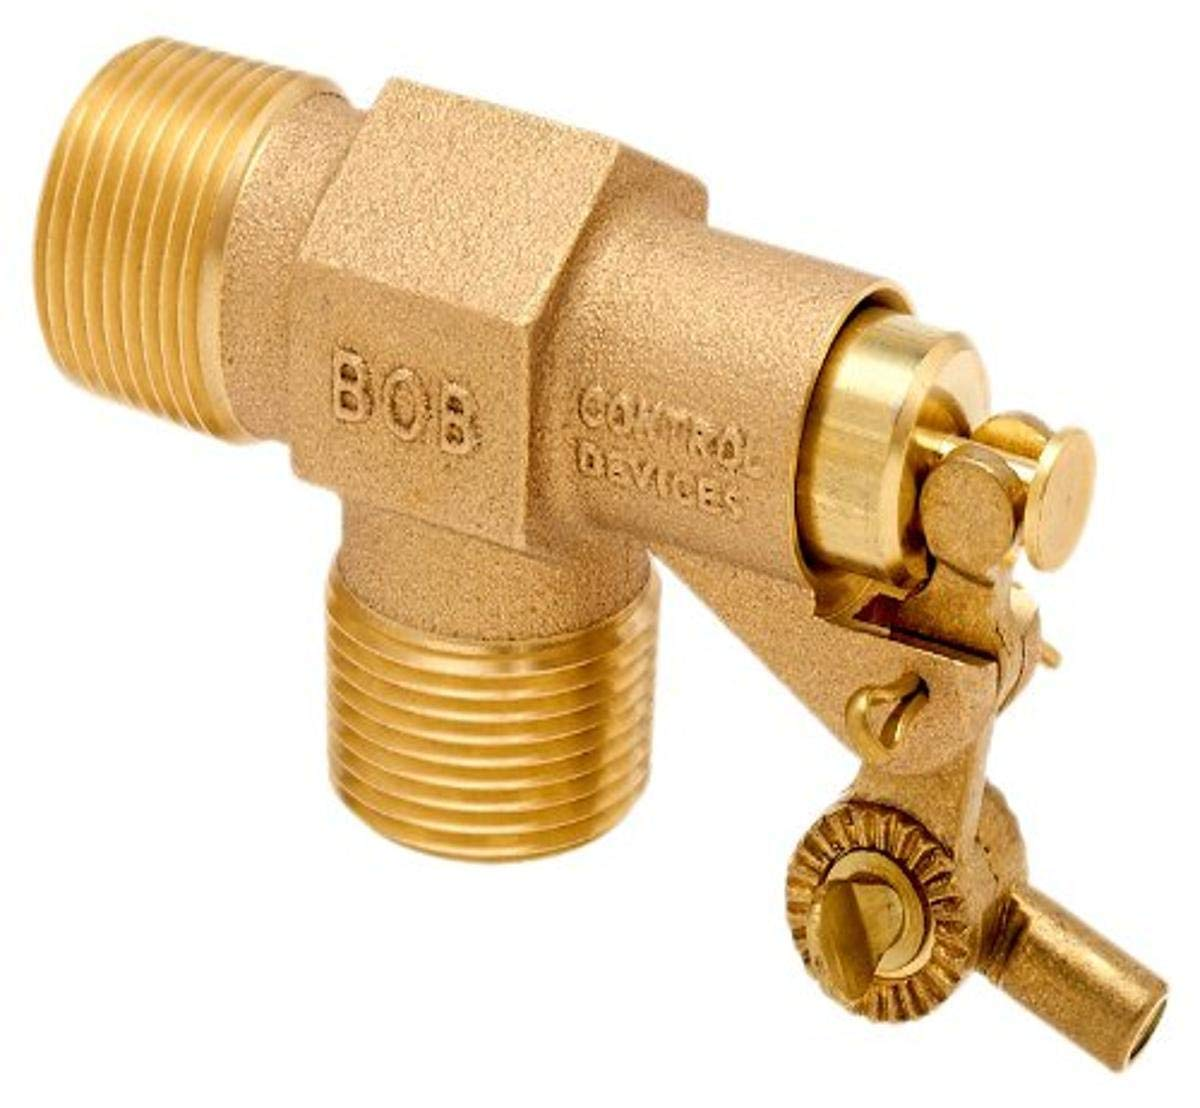 125 psi Pressure 1//4 Compression Wing Nut Inlet x Free Flow Outlet Robert Manufacturing 107 Series Bobby Brass Valve Reservoir Assembly 0.052 Orifice